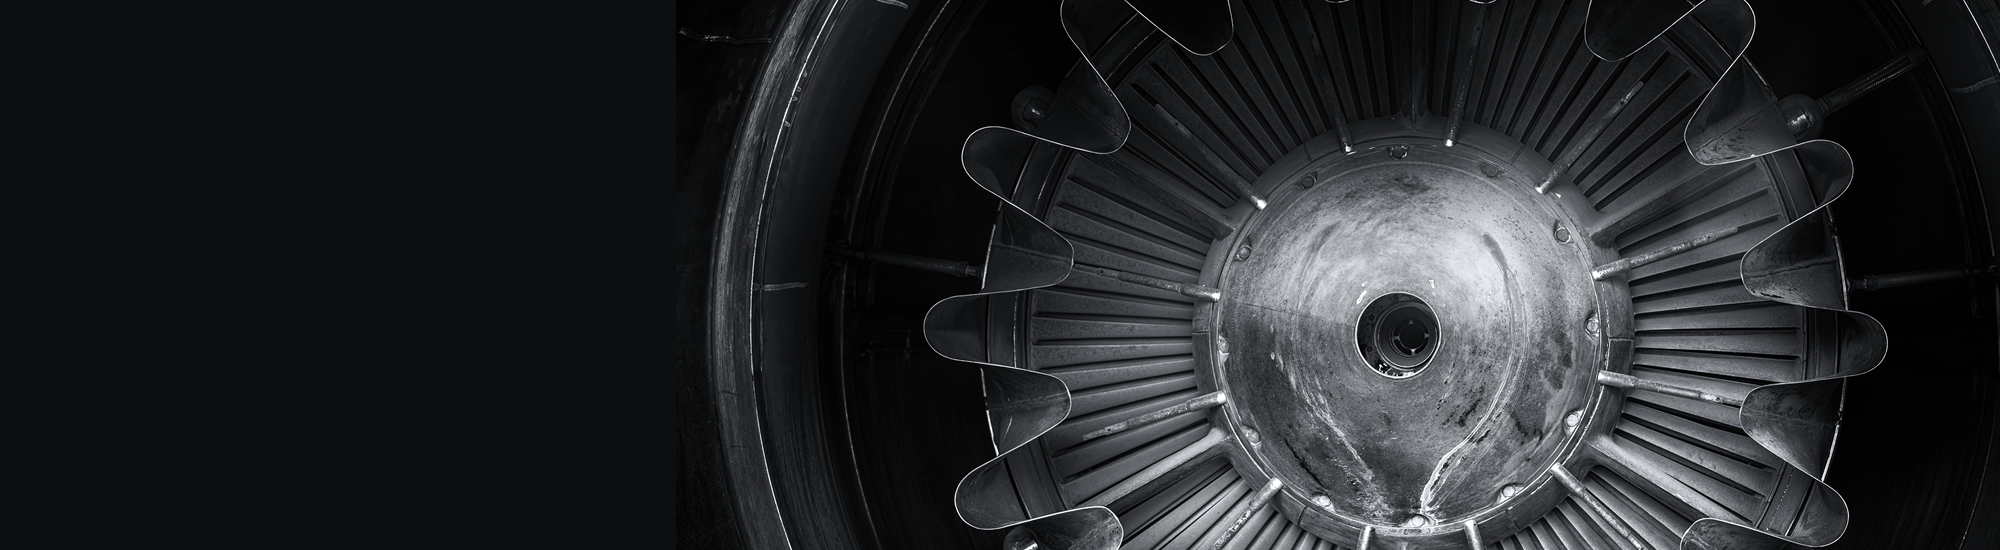 Aerofab Leading Tier 1 Supplier for Aerospace and Energy Markets